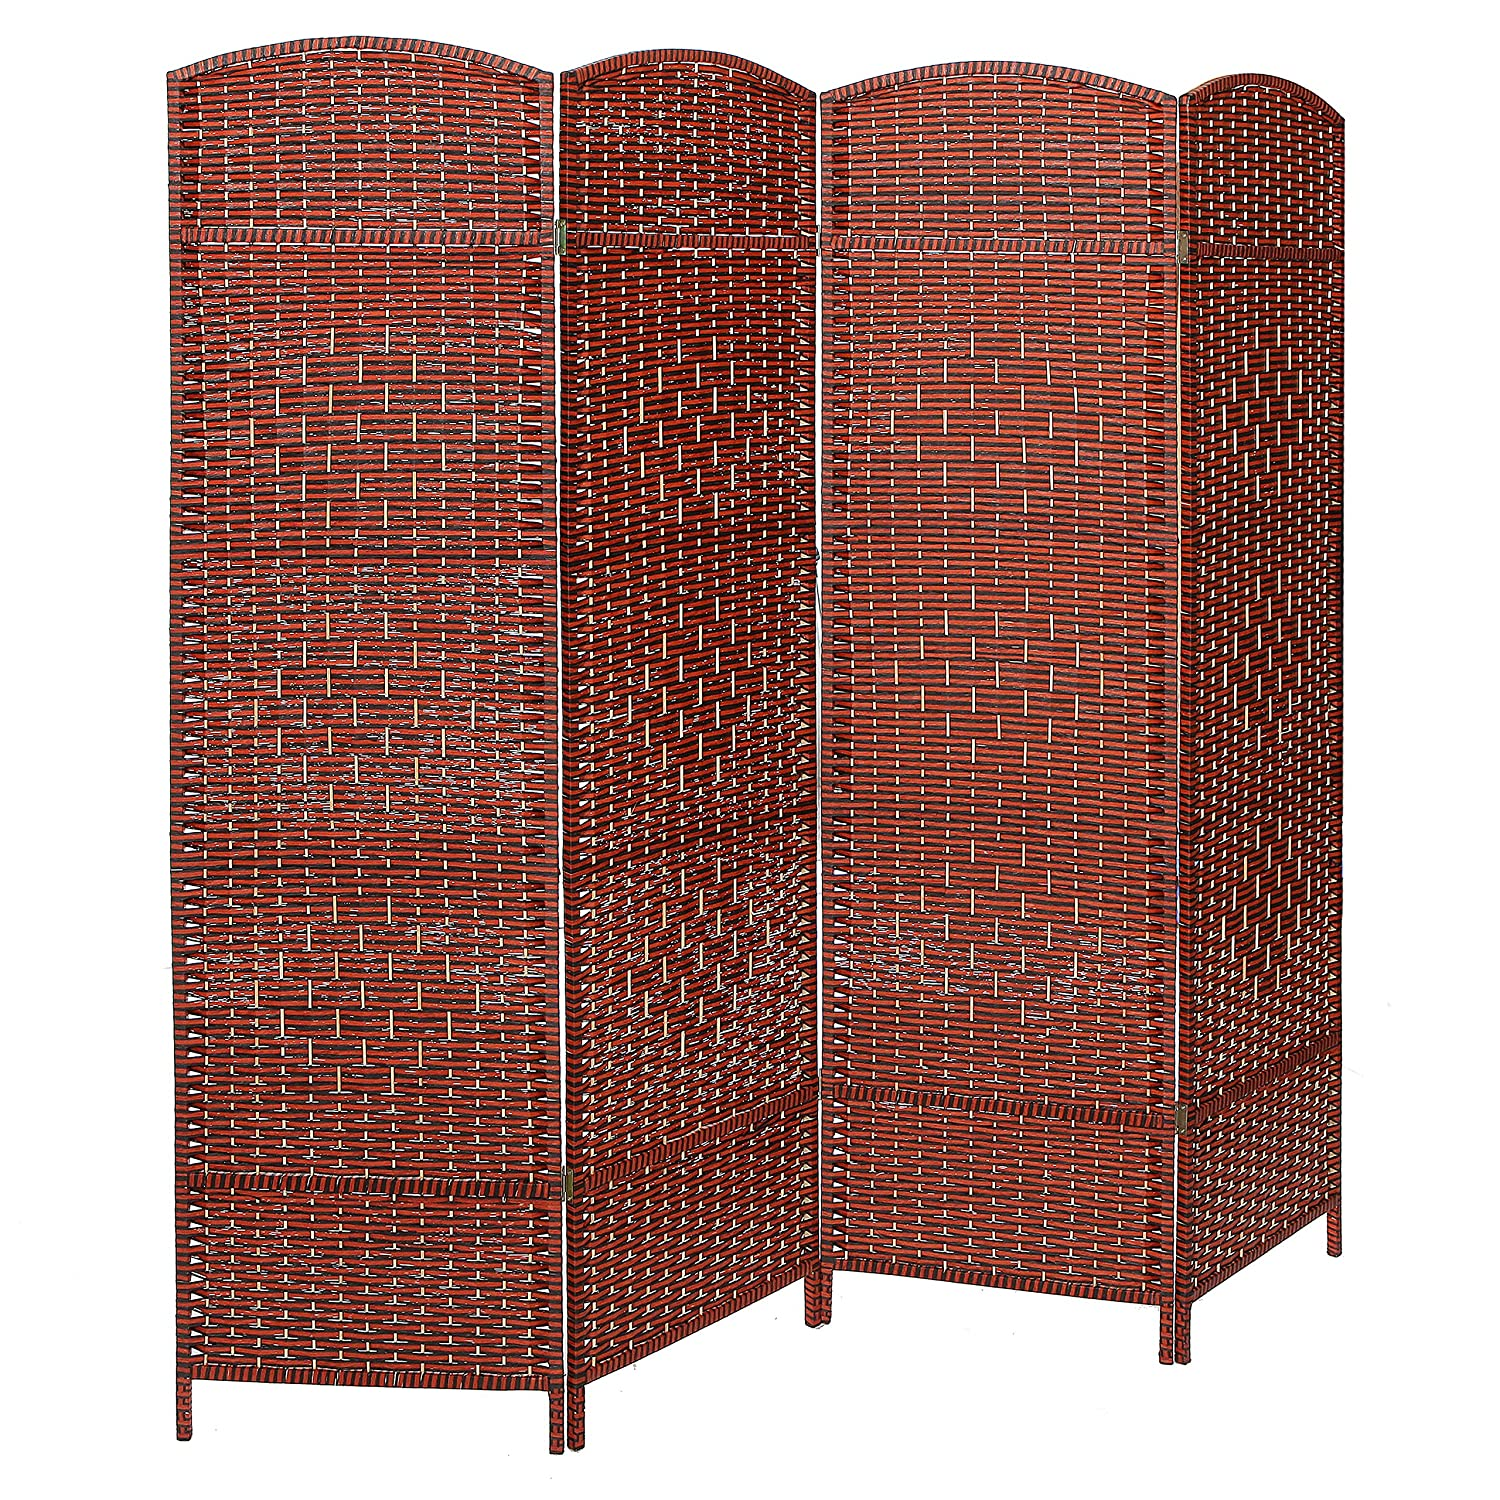 Http Www Ebay Com Itm Decorative Freestanding 4 Hinged Panel Woven Brown Wood Privacy Room Divider Par 152242578153